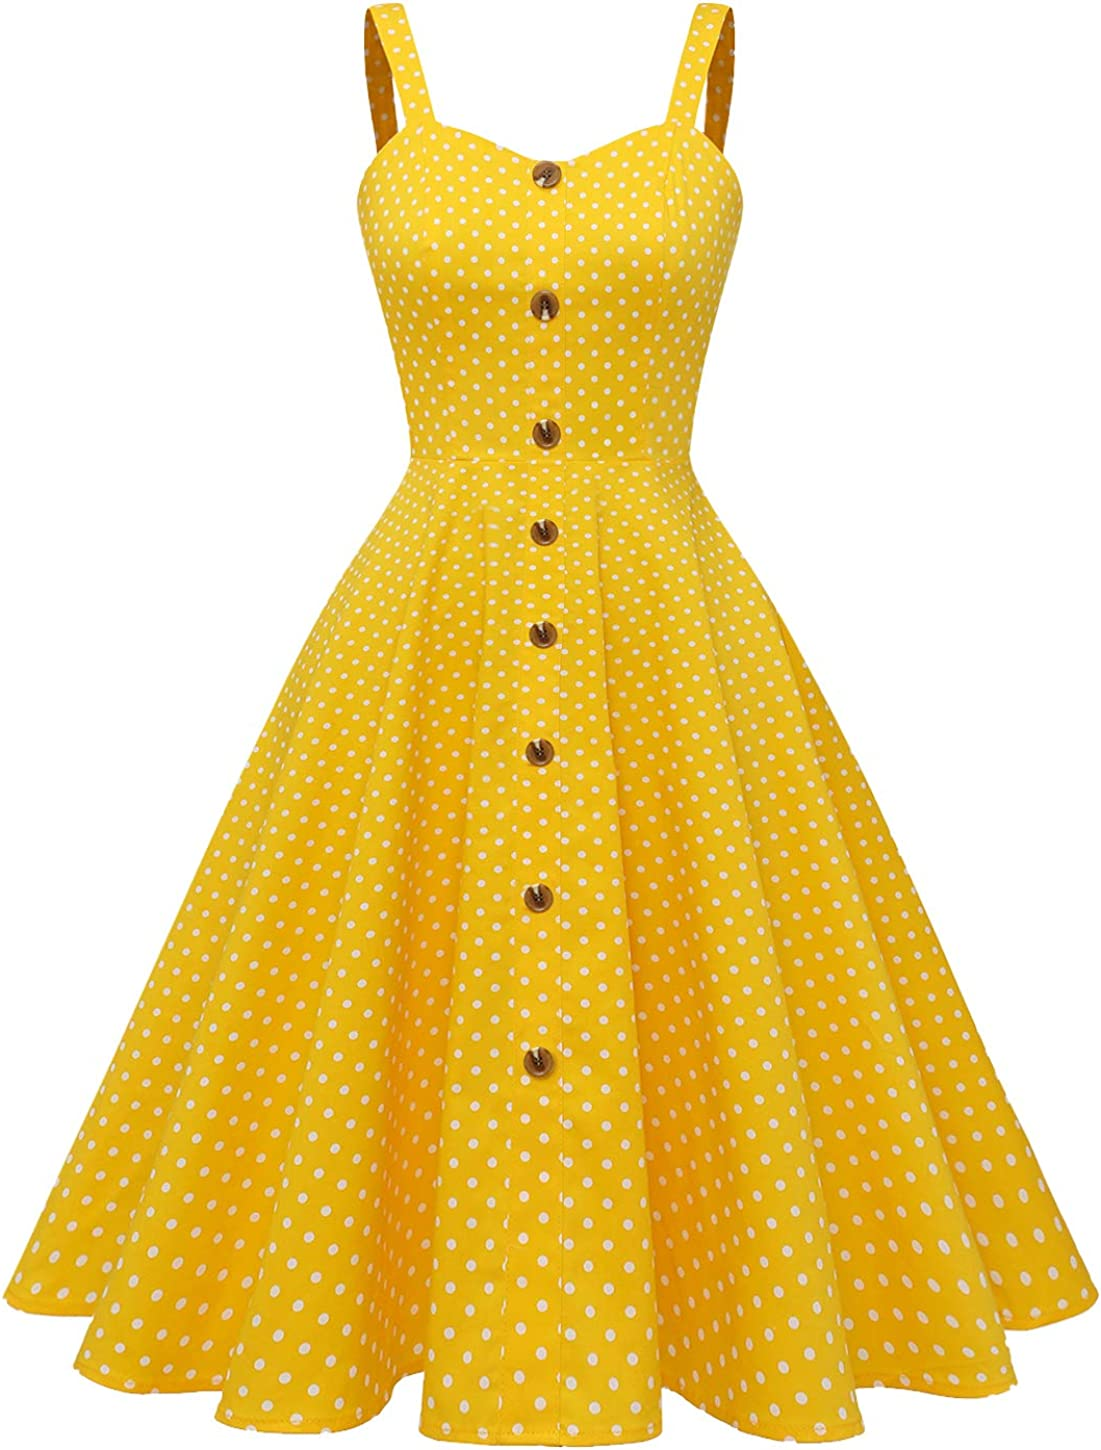 Wedtrend Women's 1950s Vintage Sleeveless A-Line Casual Button Down Party Swing Cocktail Dress